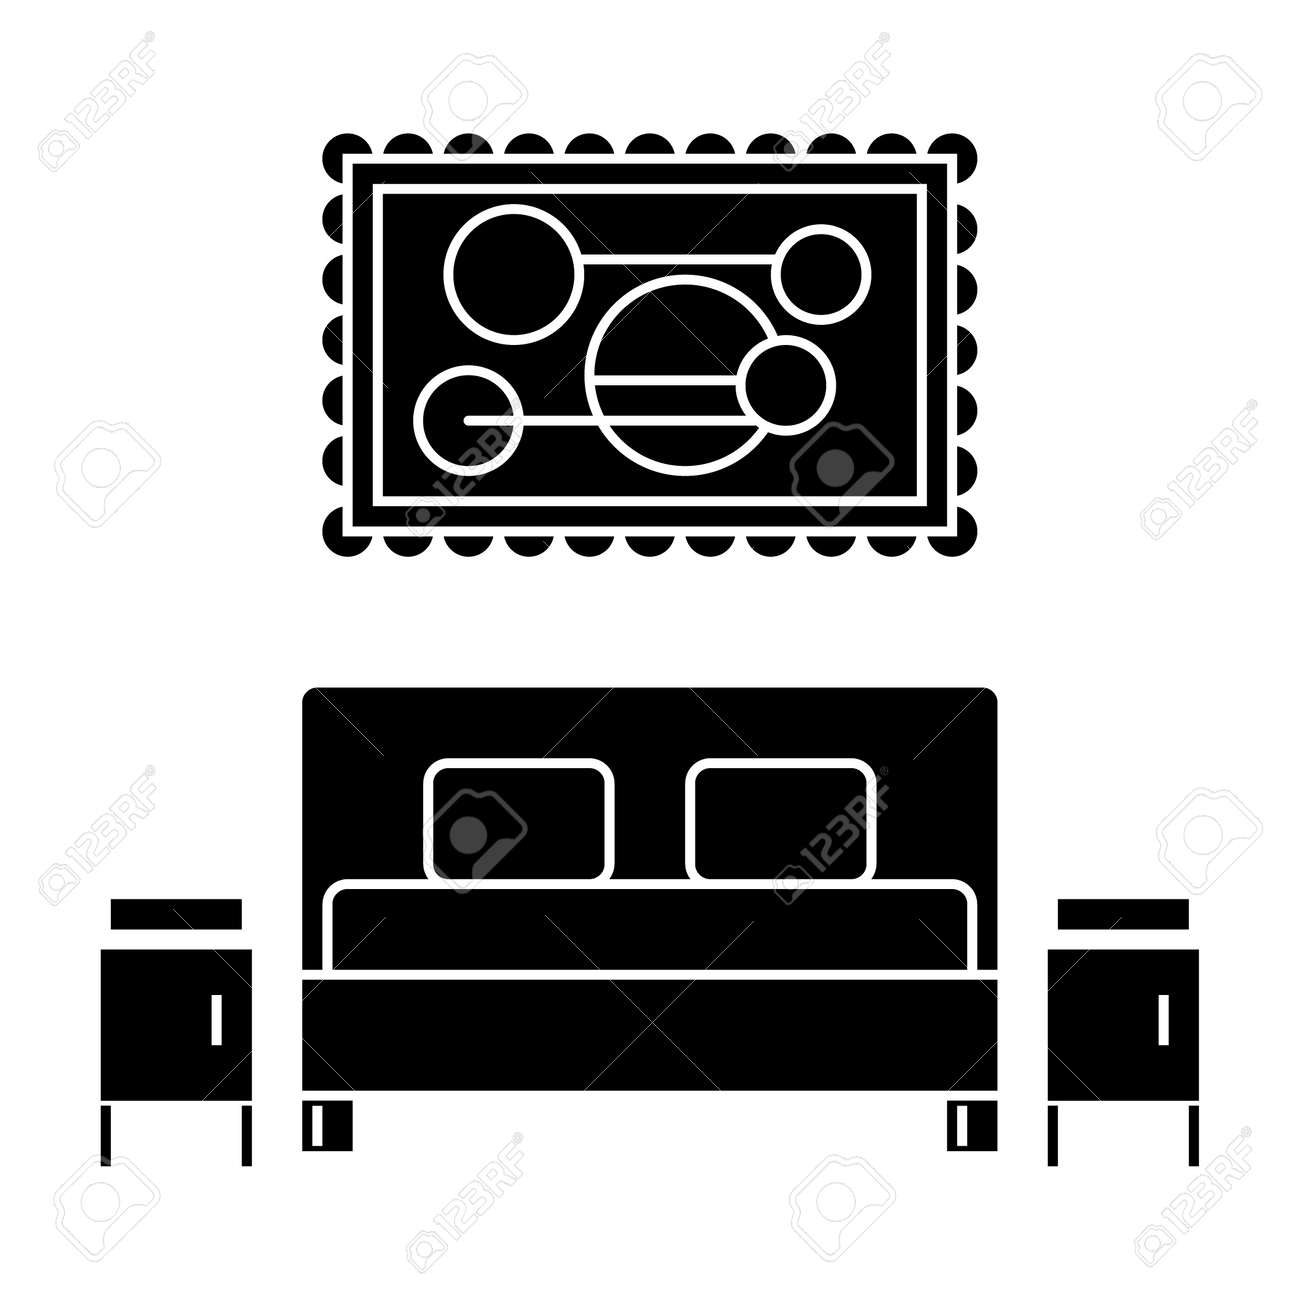 Bedroom Icon Vector Illustration Black Sign On Isolated Background